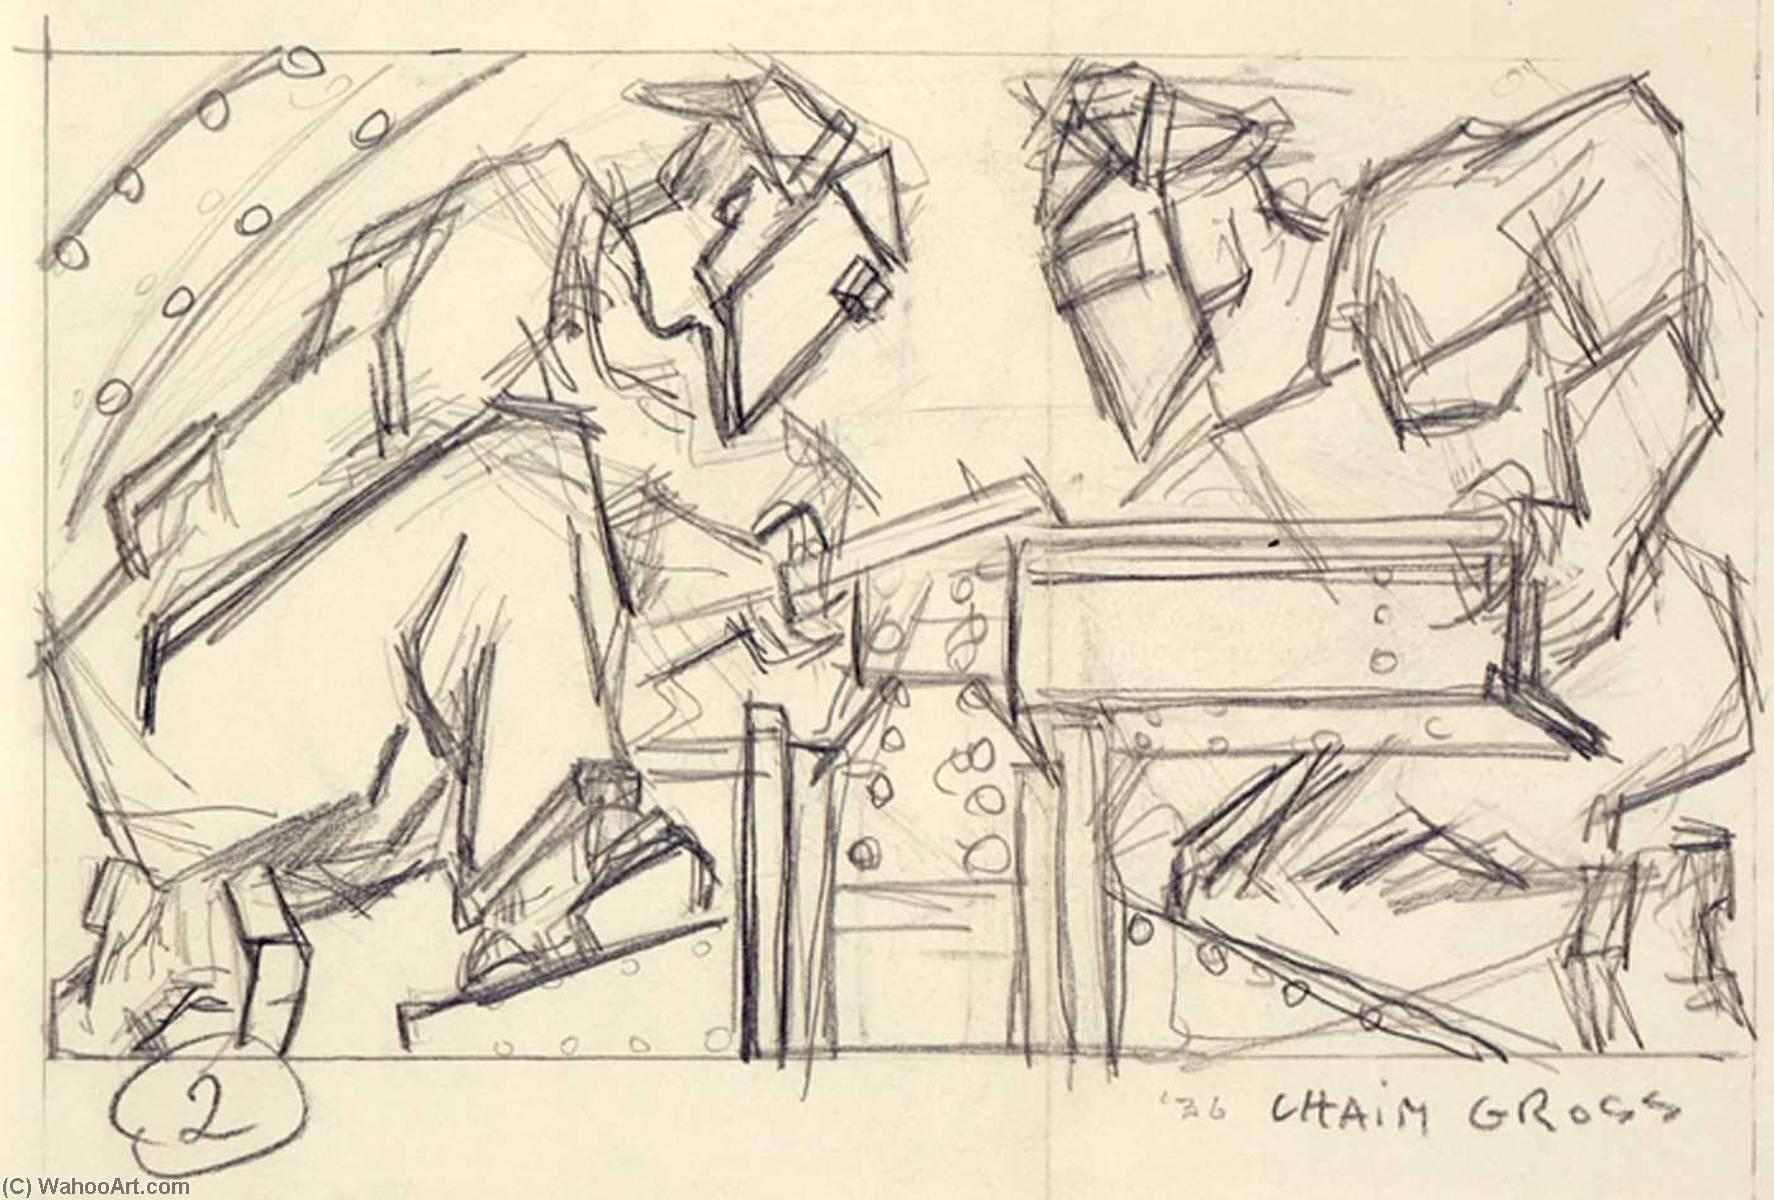 Welders 2 (sketch for relief panel, U.S. Federal Trade Commission Building), Pencil by Chaim Gross